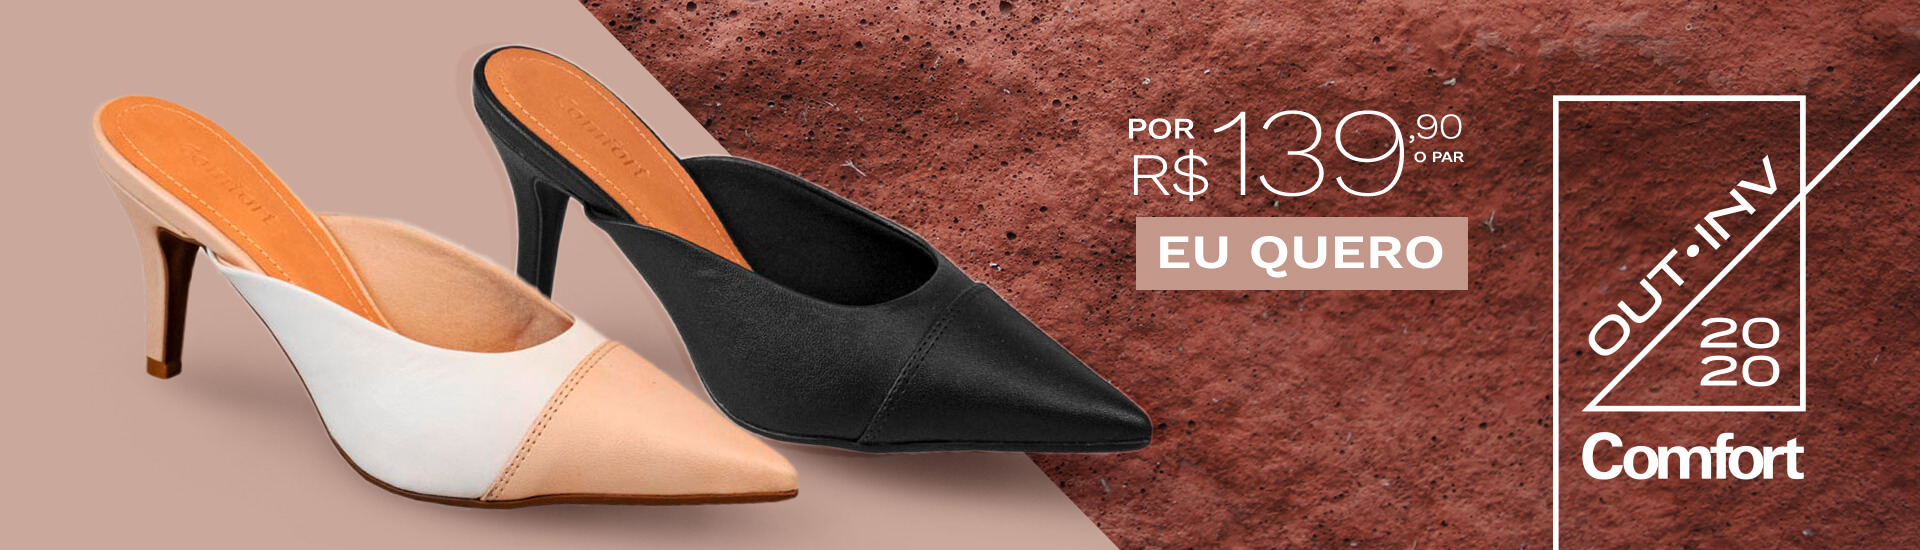 7060-272 out inverno